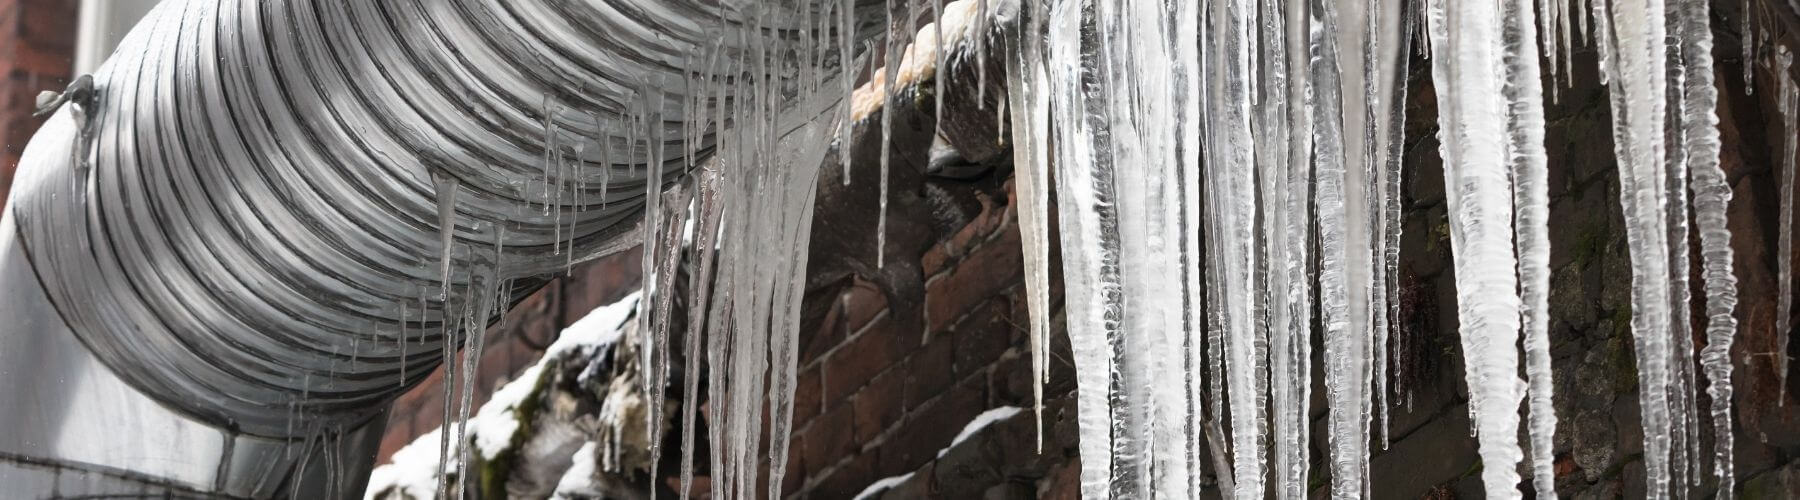 Pipes frozen over